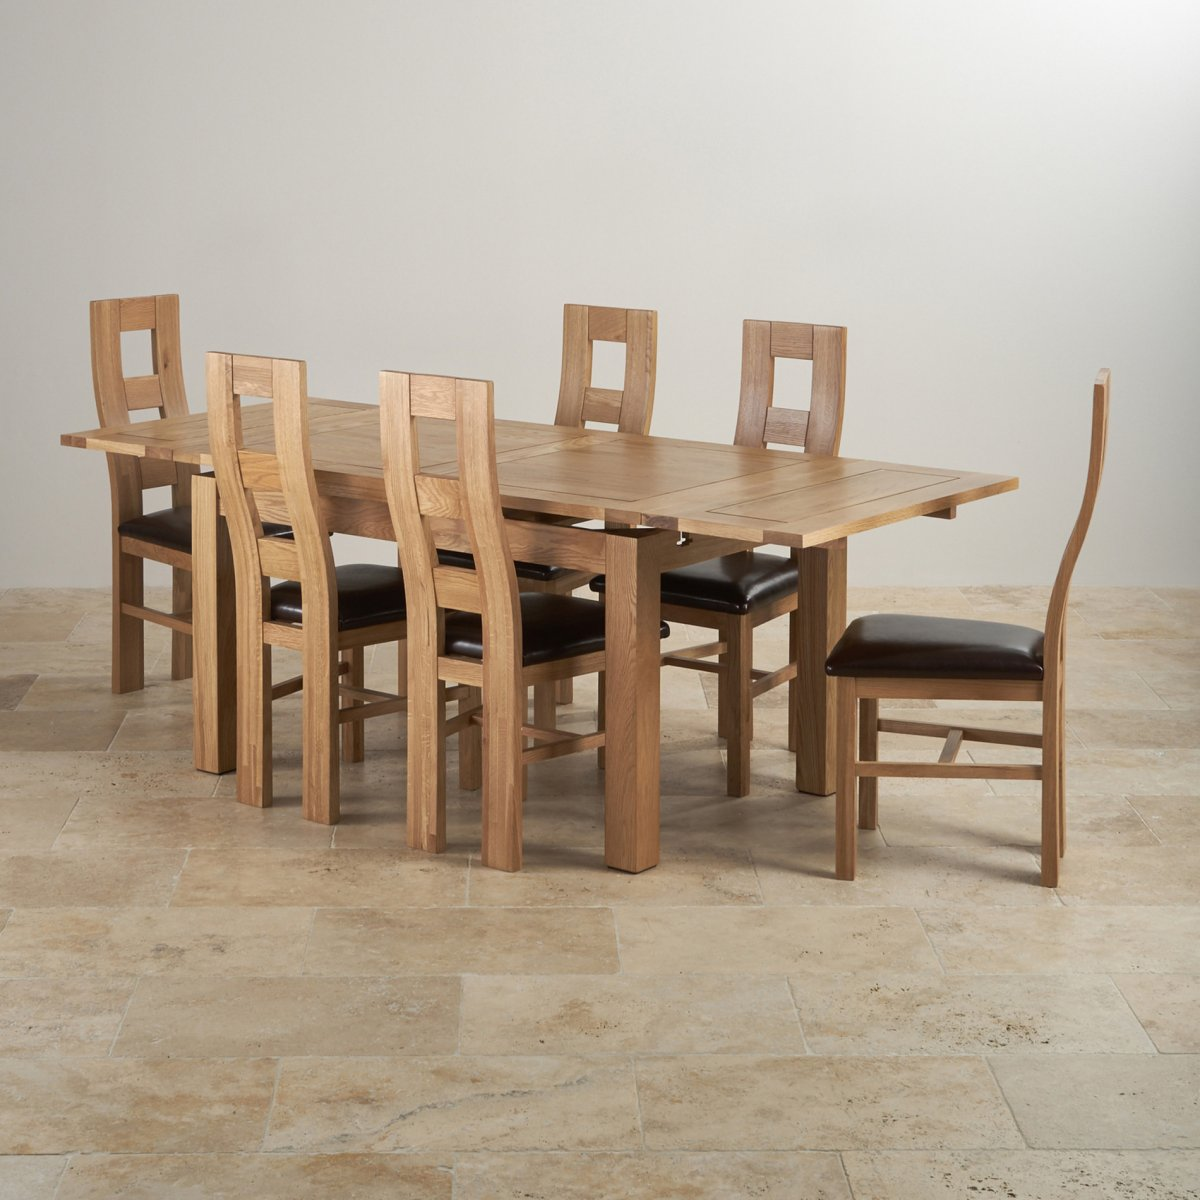 Dining Table With Bench And Chairs Were Comfortable: Dorset Dining Set: Extending Table In Oak + 6 Leather Chairs